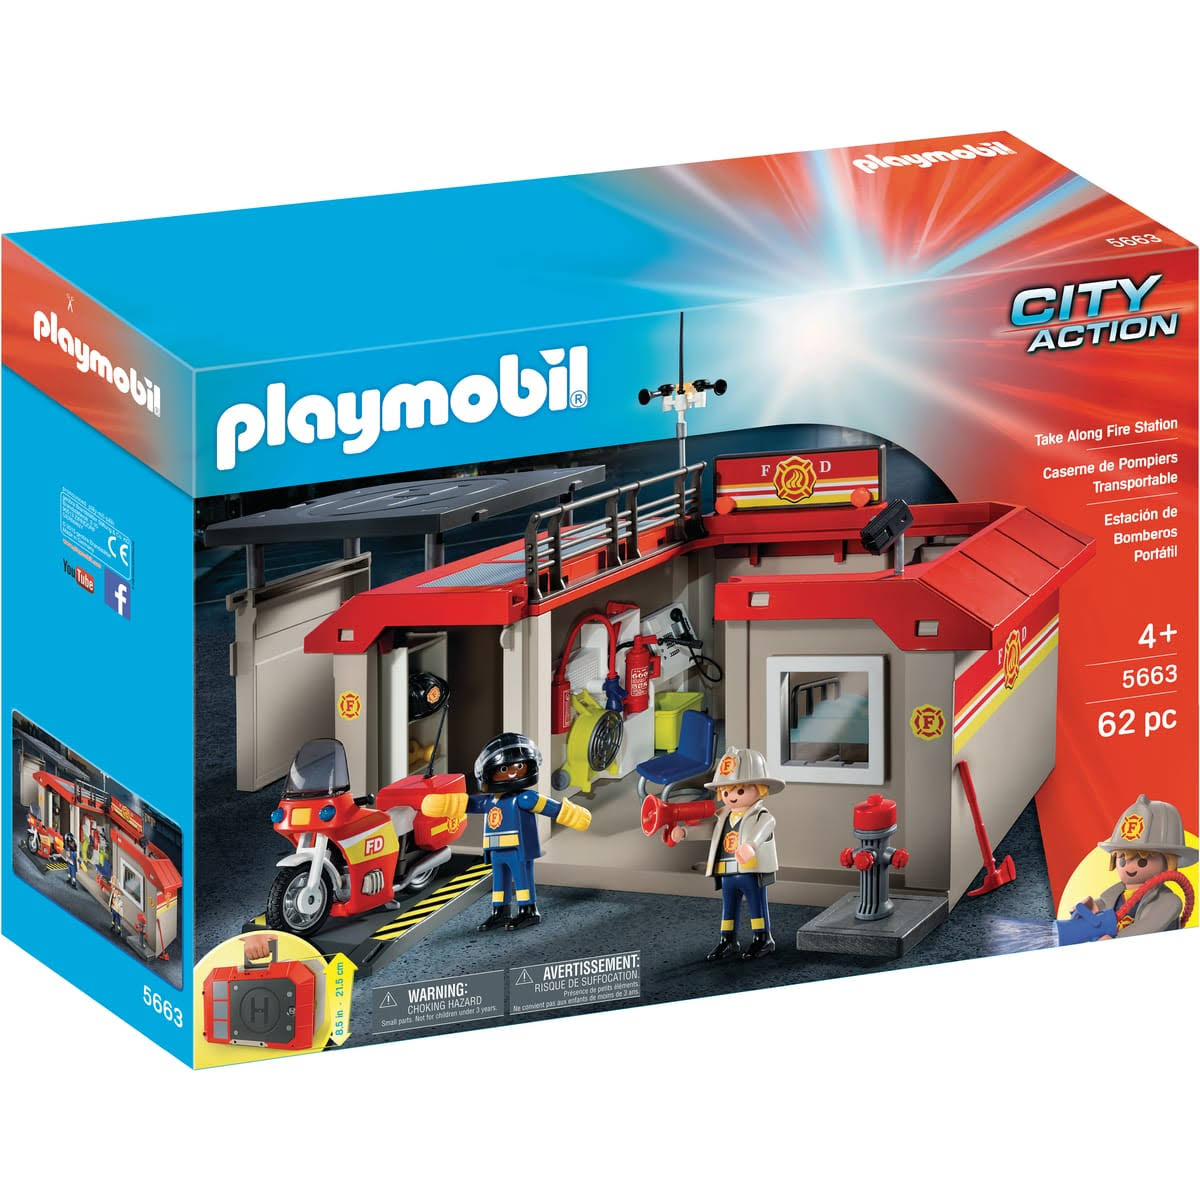 Playmobil City Action Playset - Take Along Fire Station